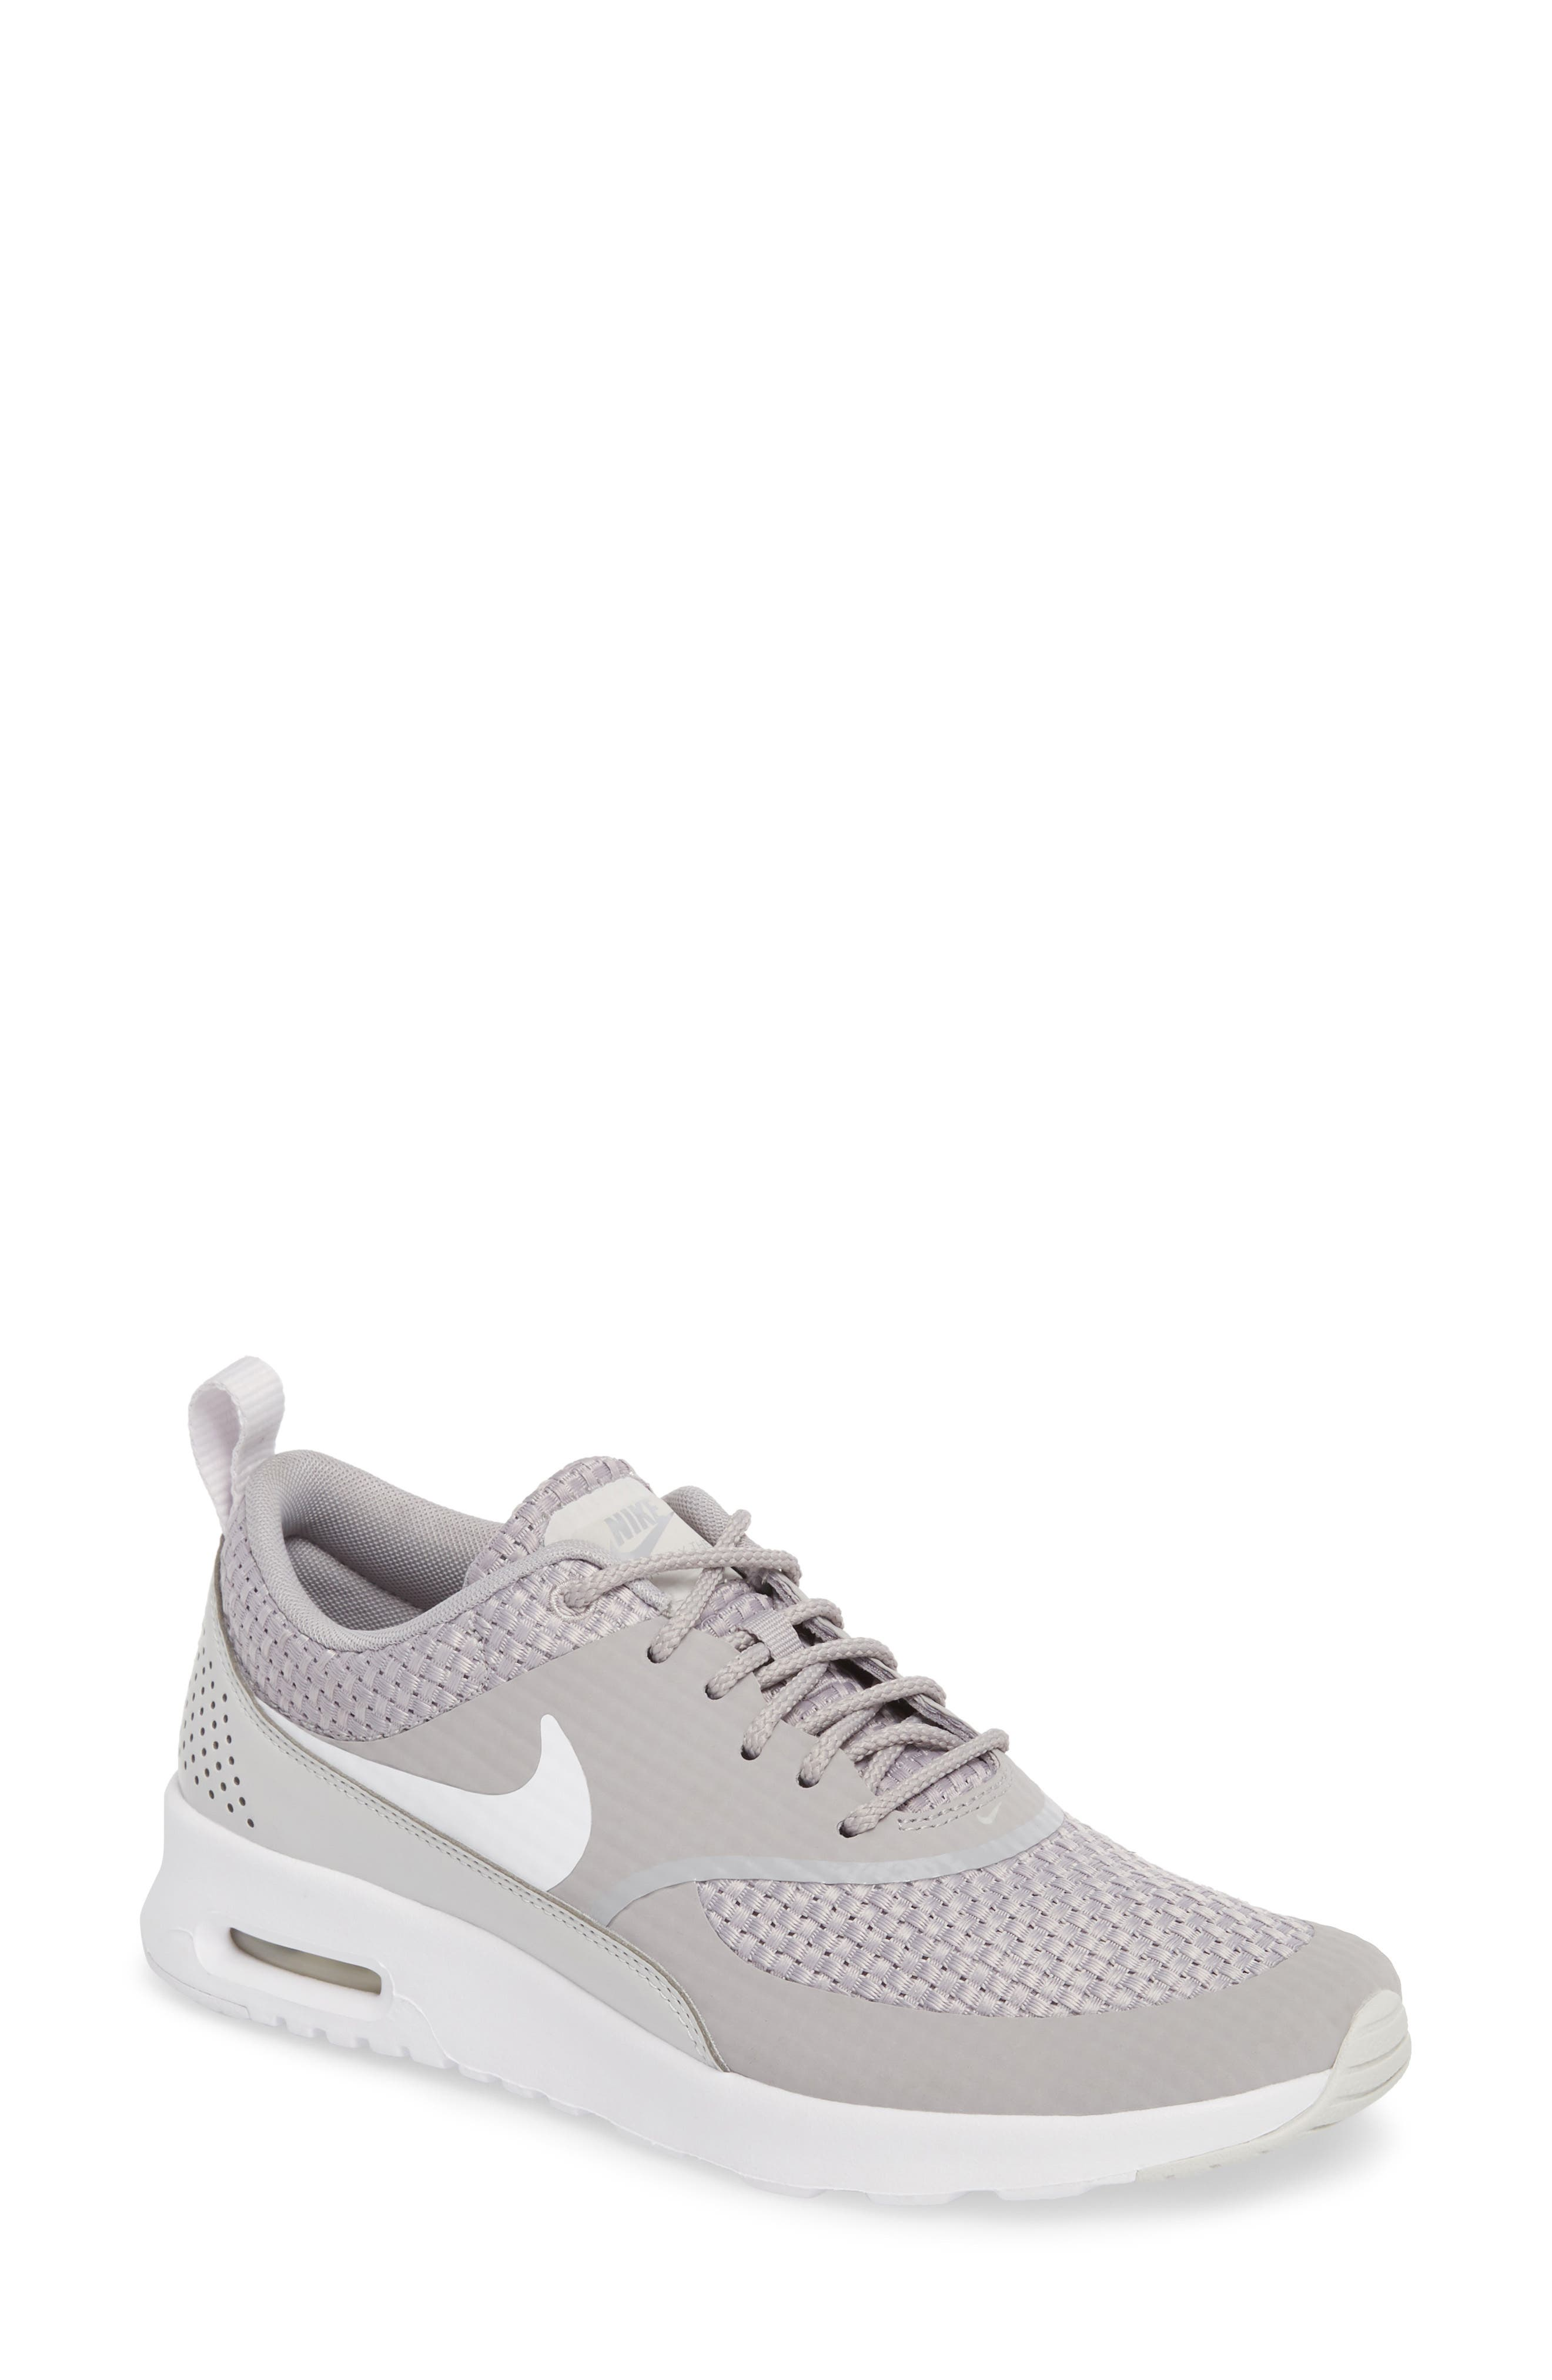 Air Max Thea Sneaker,                             Main thumbnail 1, color,                             Atmosphere Grey/ White